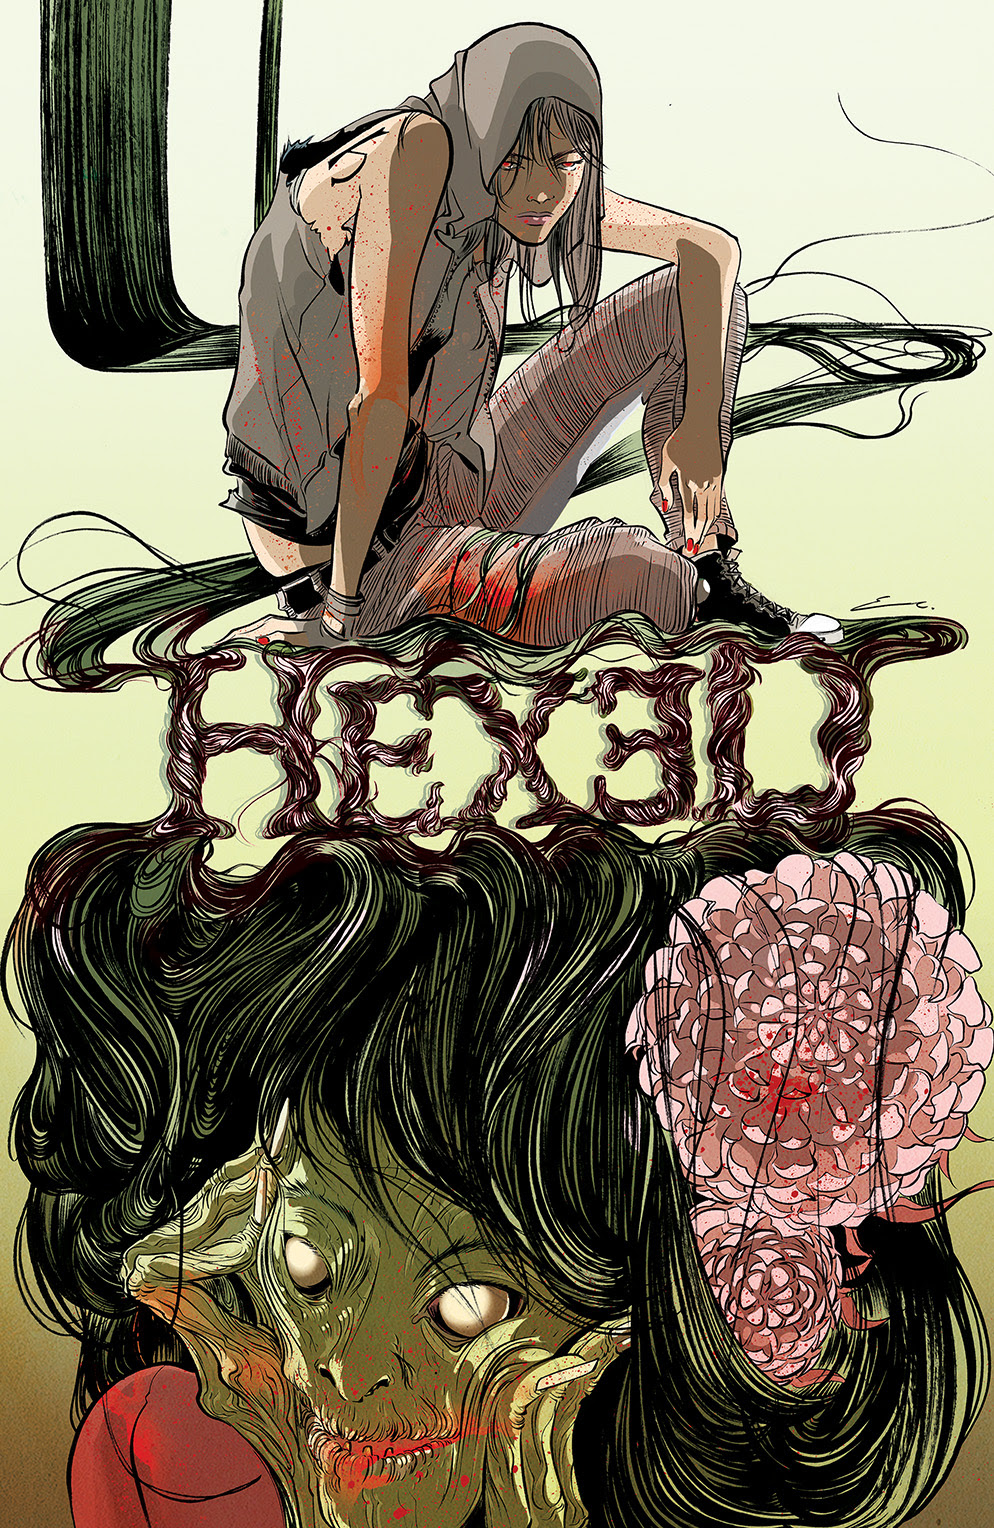 HEXED #1 Cover A by Emma Rios